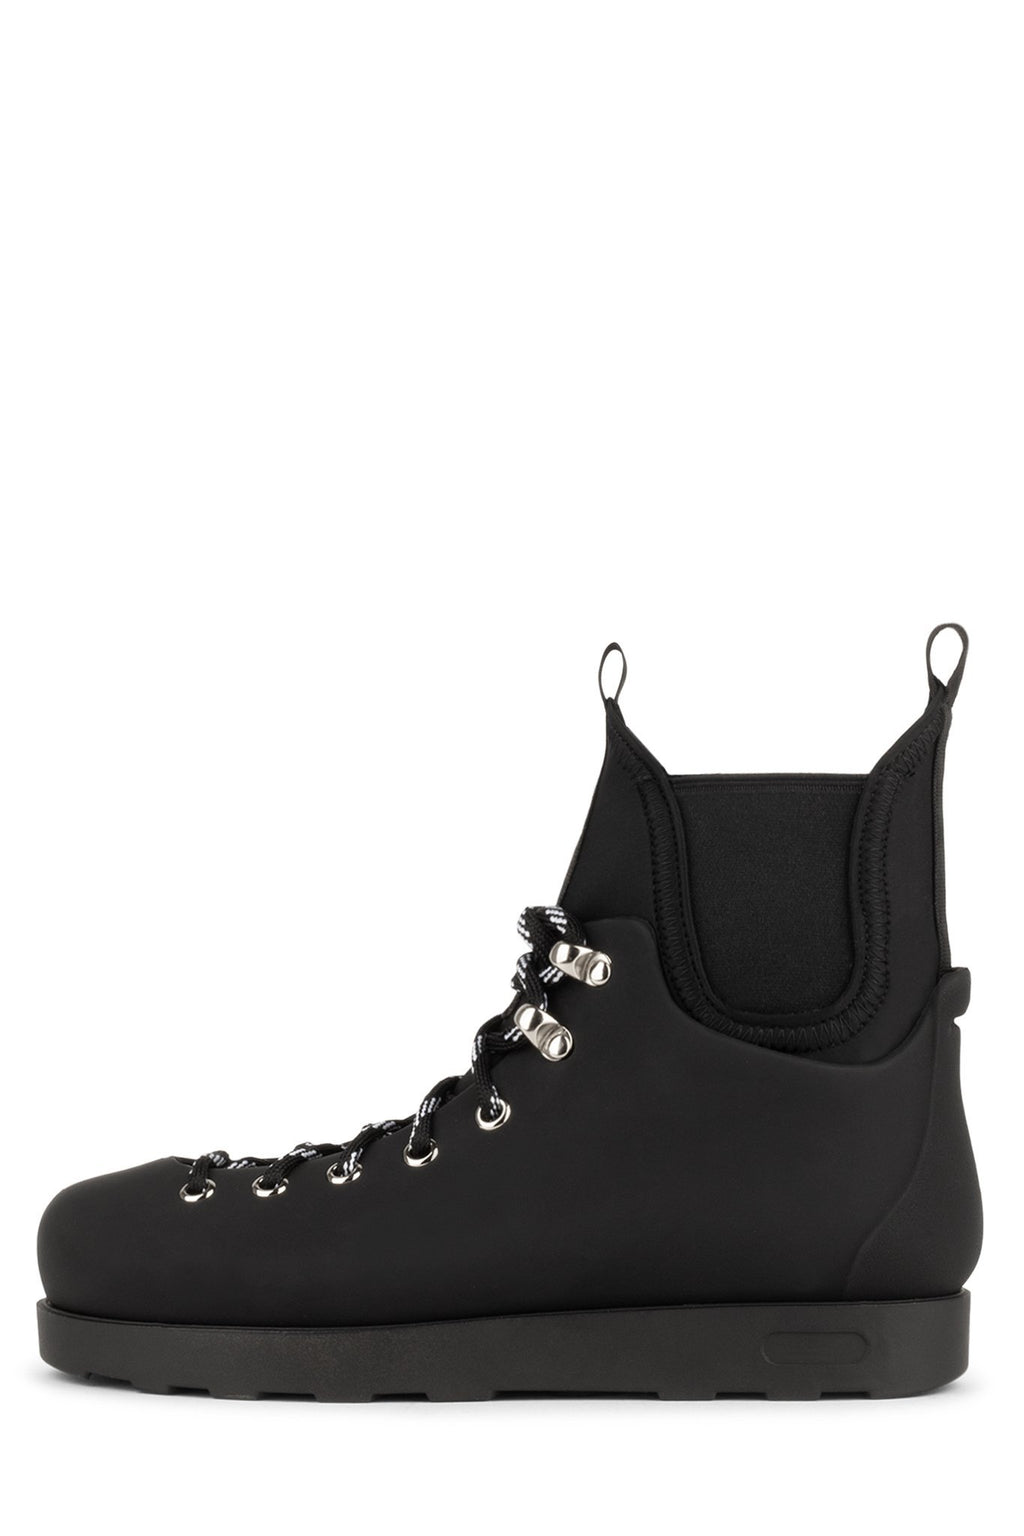 BAROMETRIC Rain Boot Jeffrey Campbell Black Matte 6